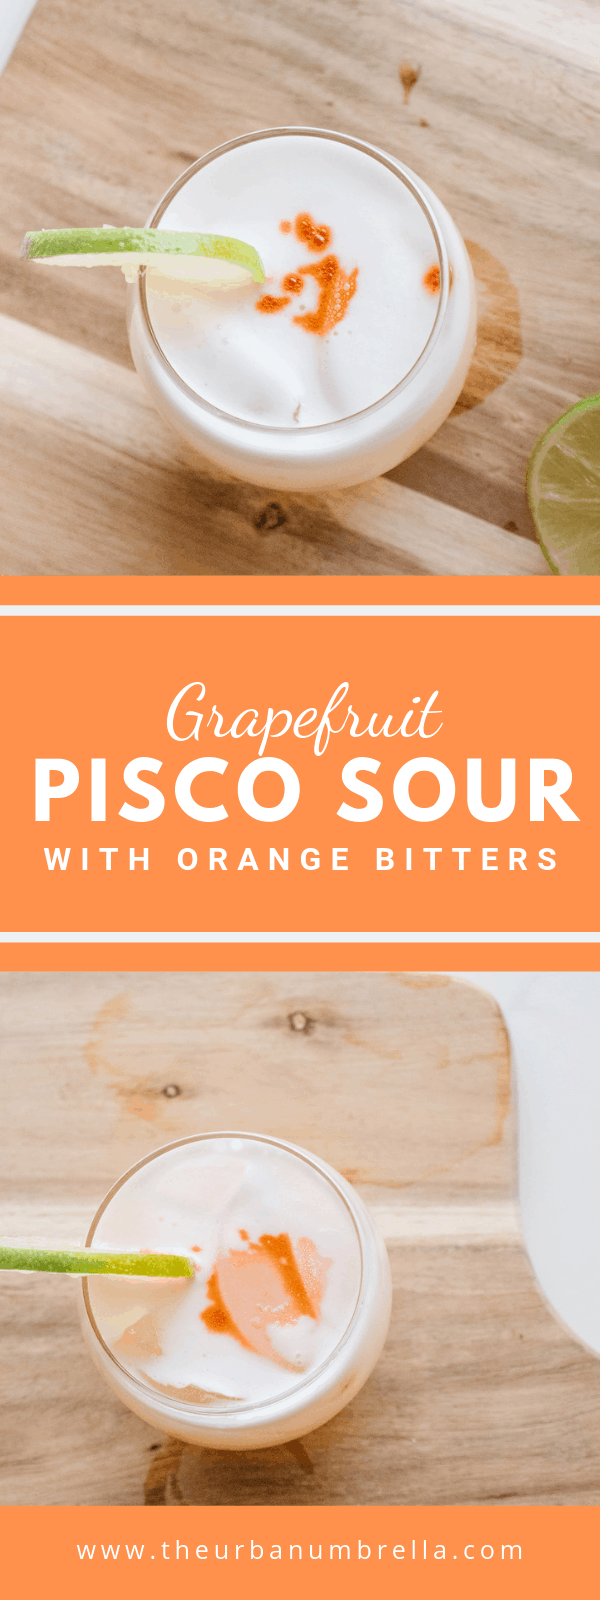 Grapefruit Pisco Sour with Orange Bitters